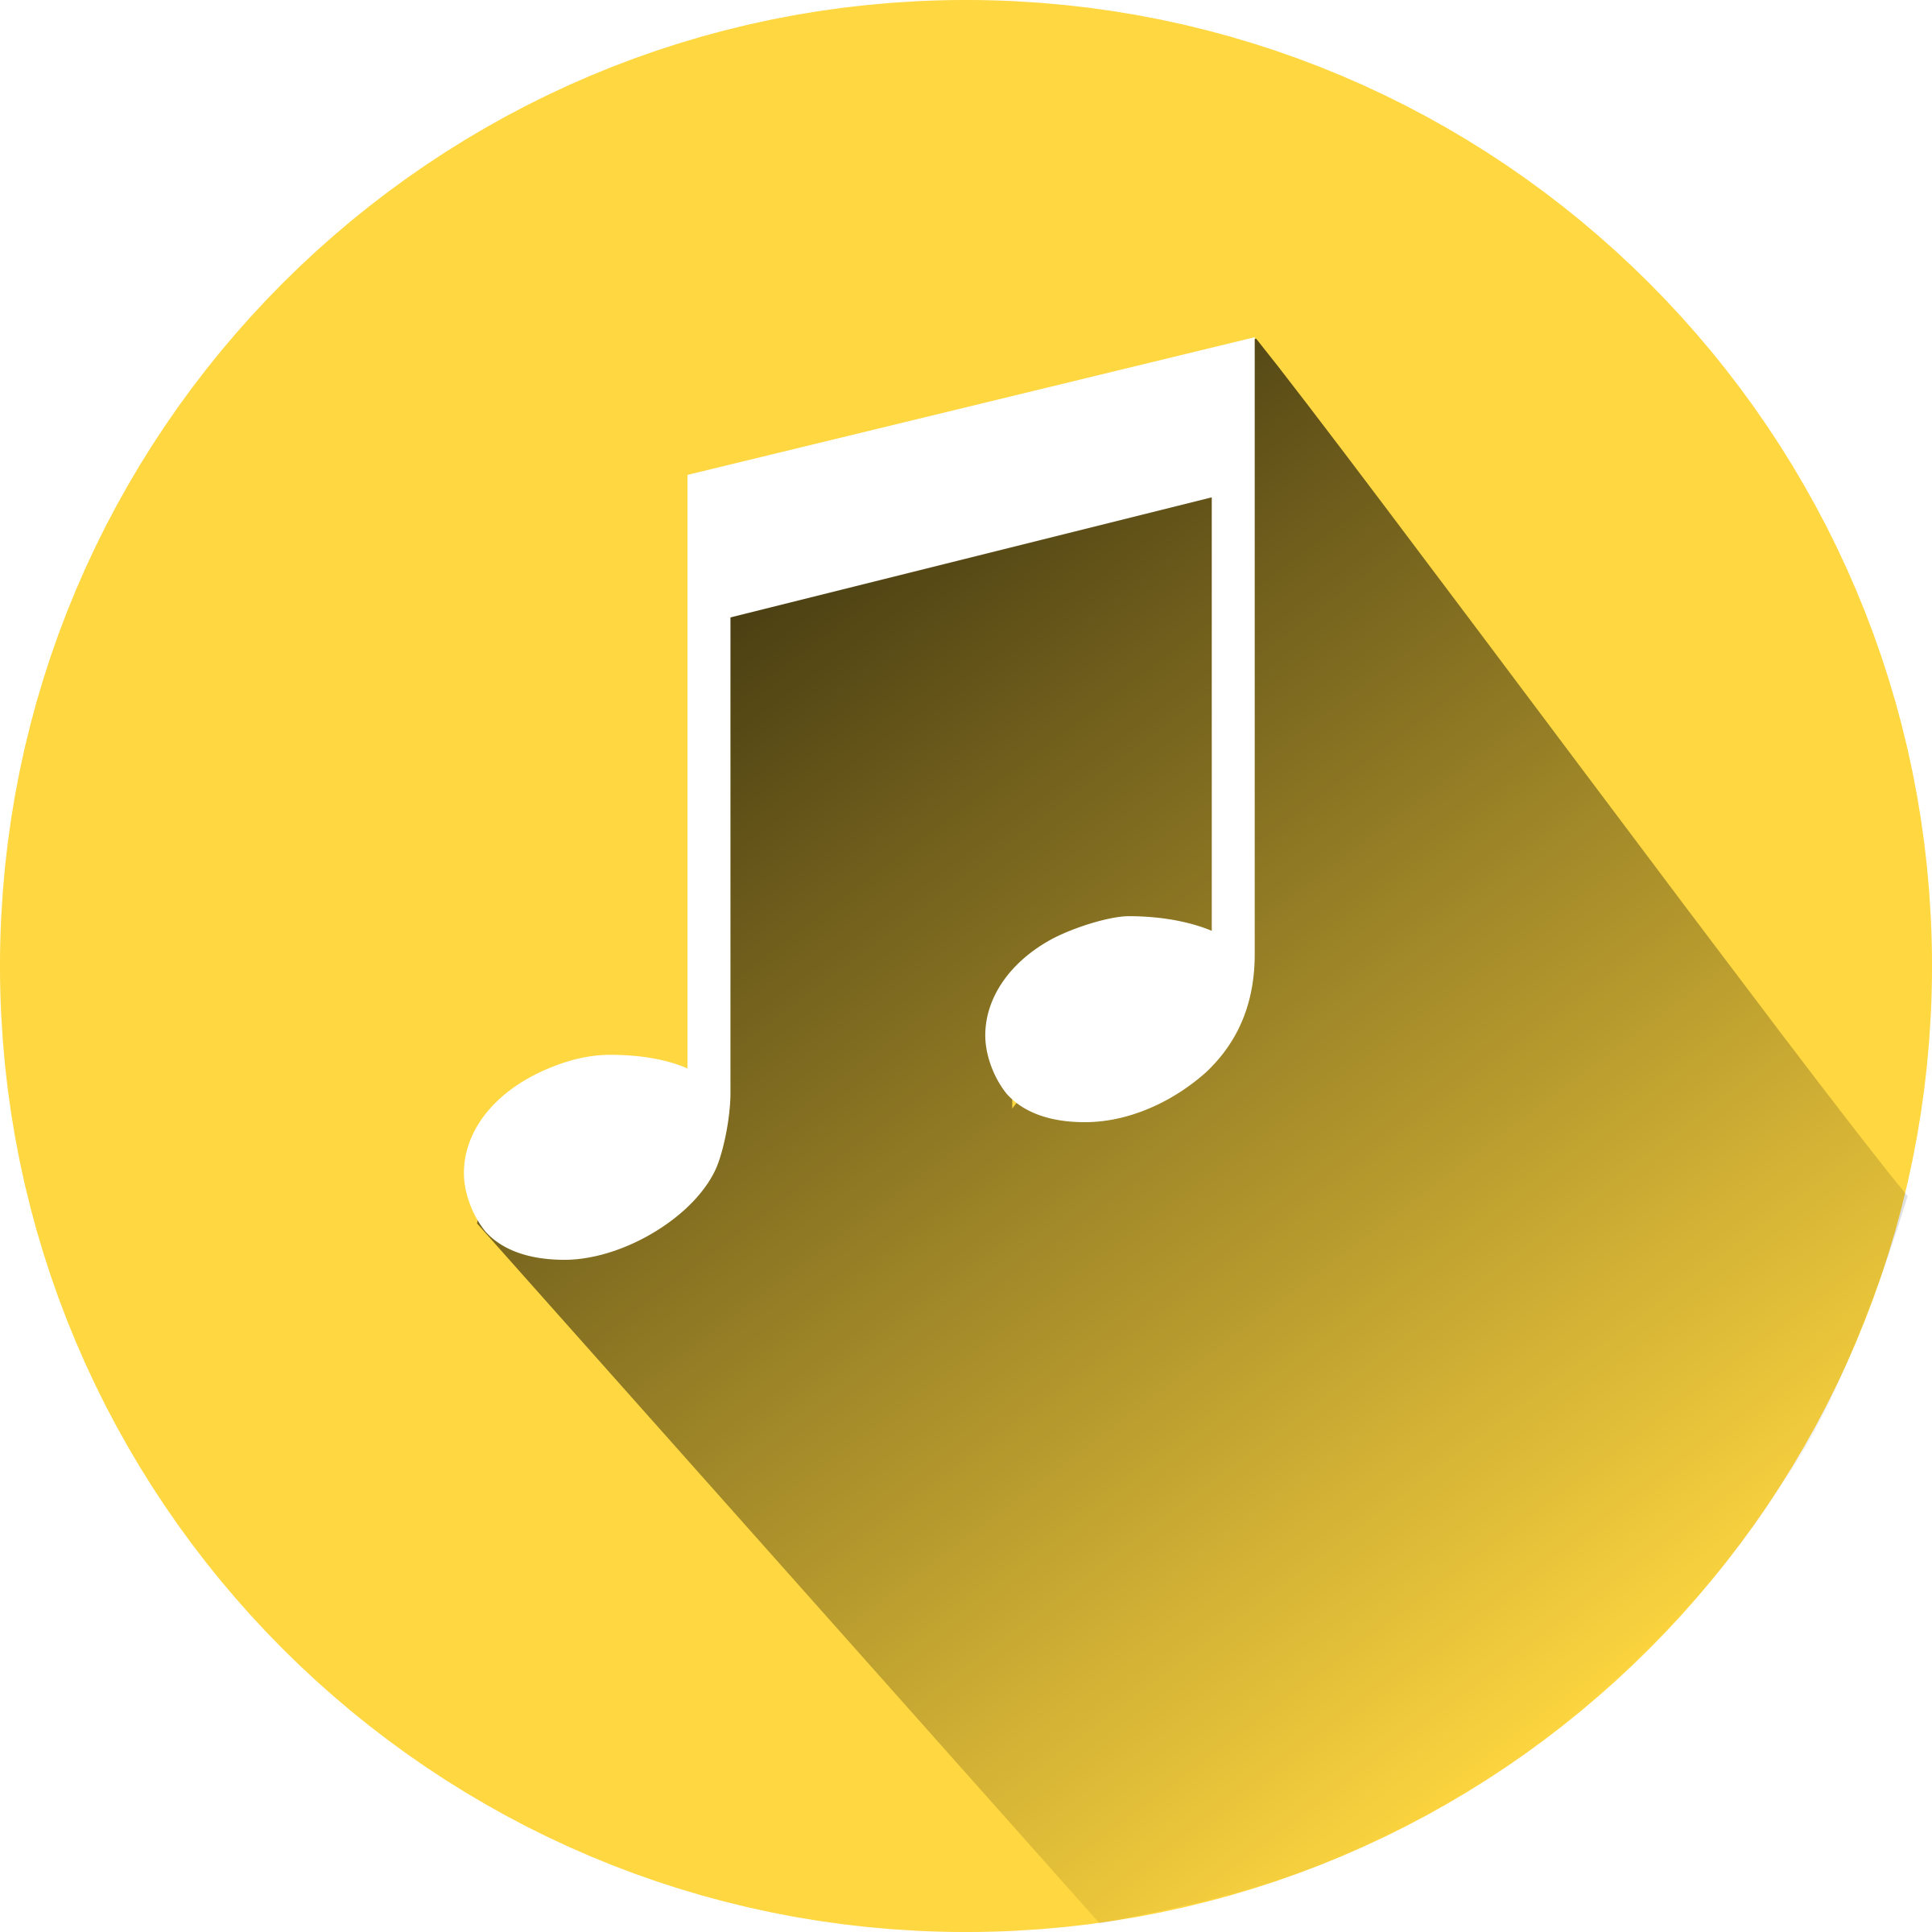 Music not png. Note on yellow cyrcle